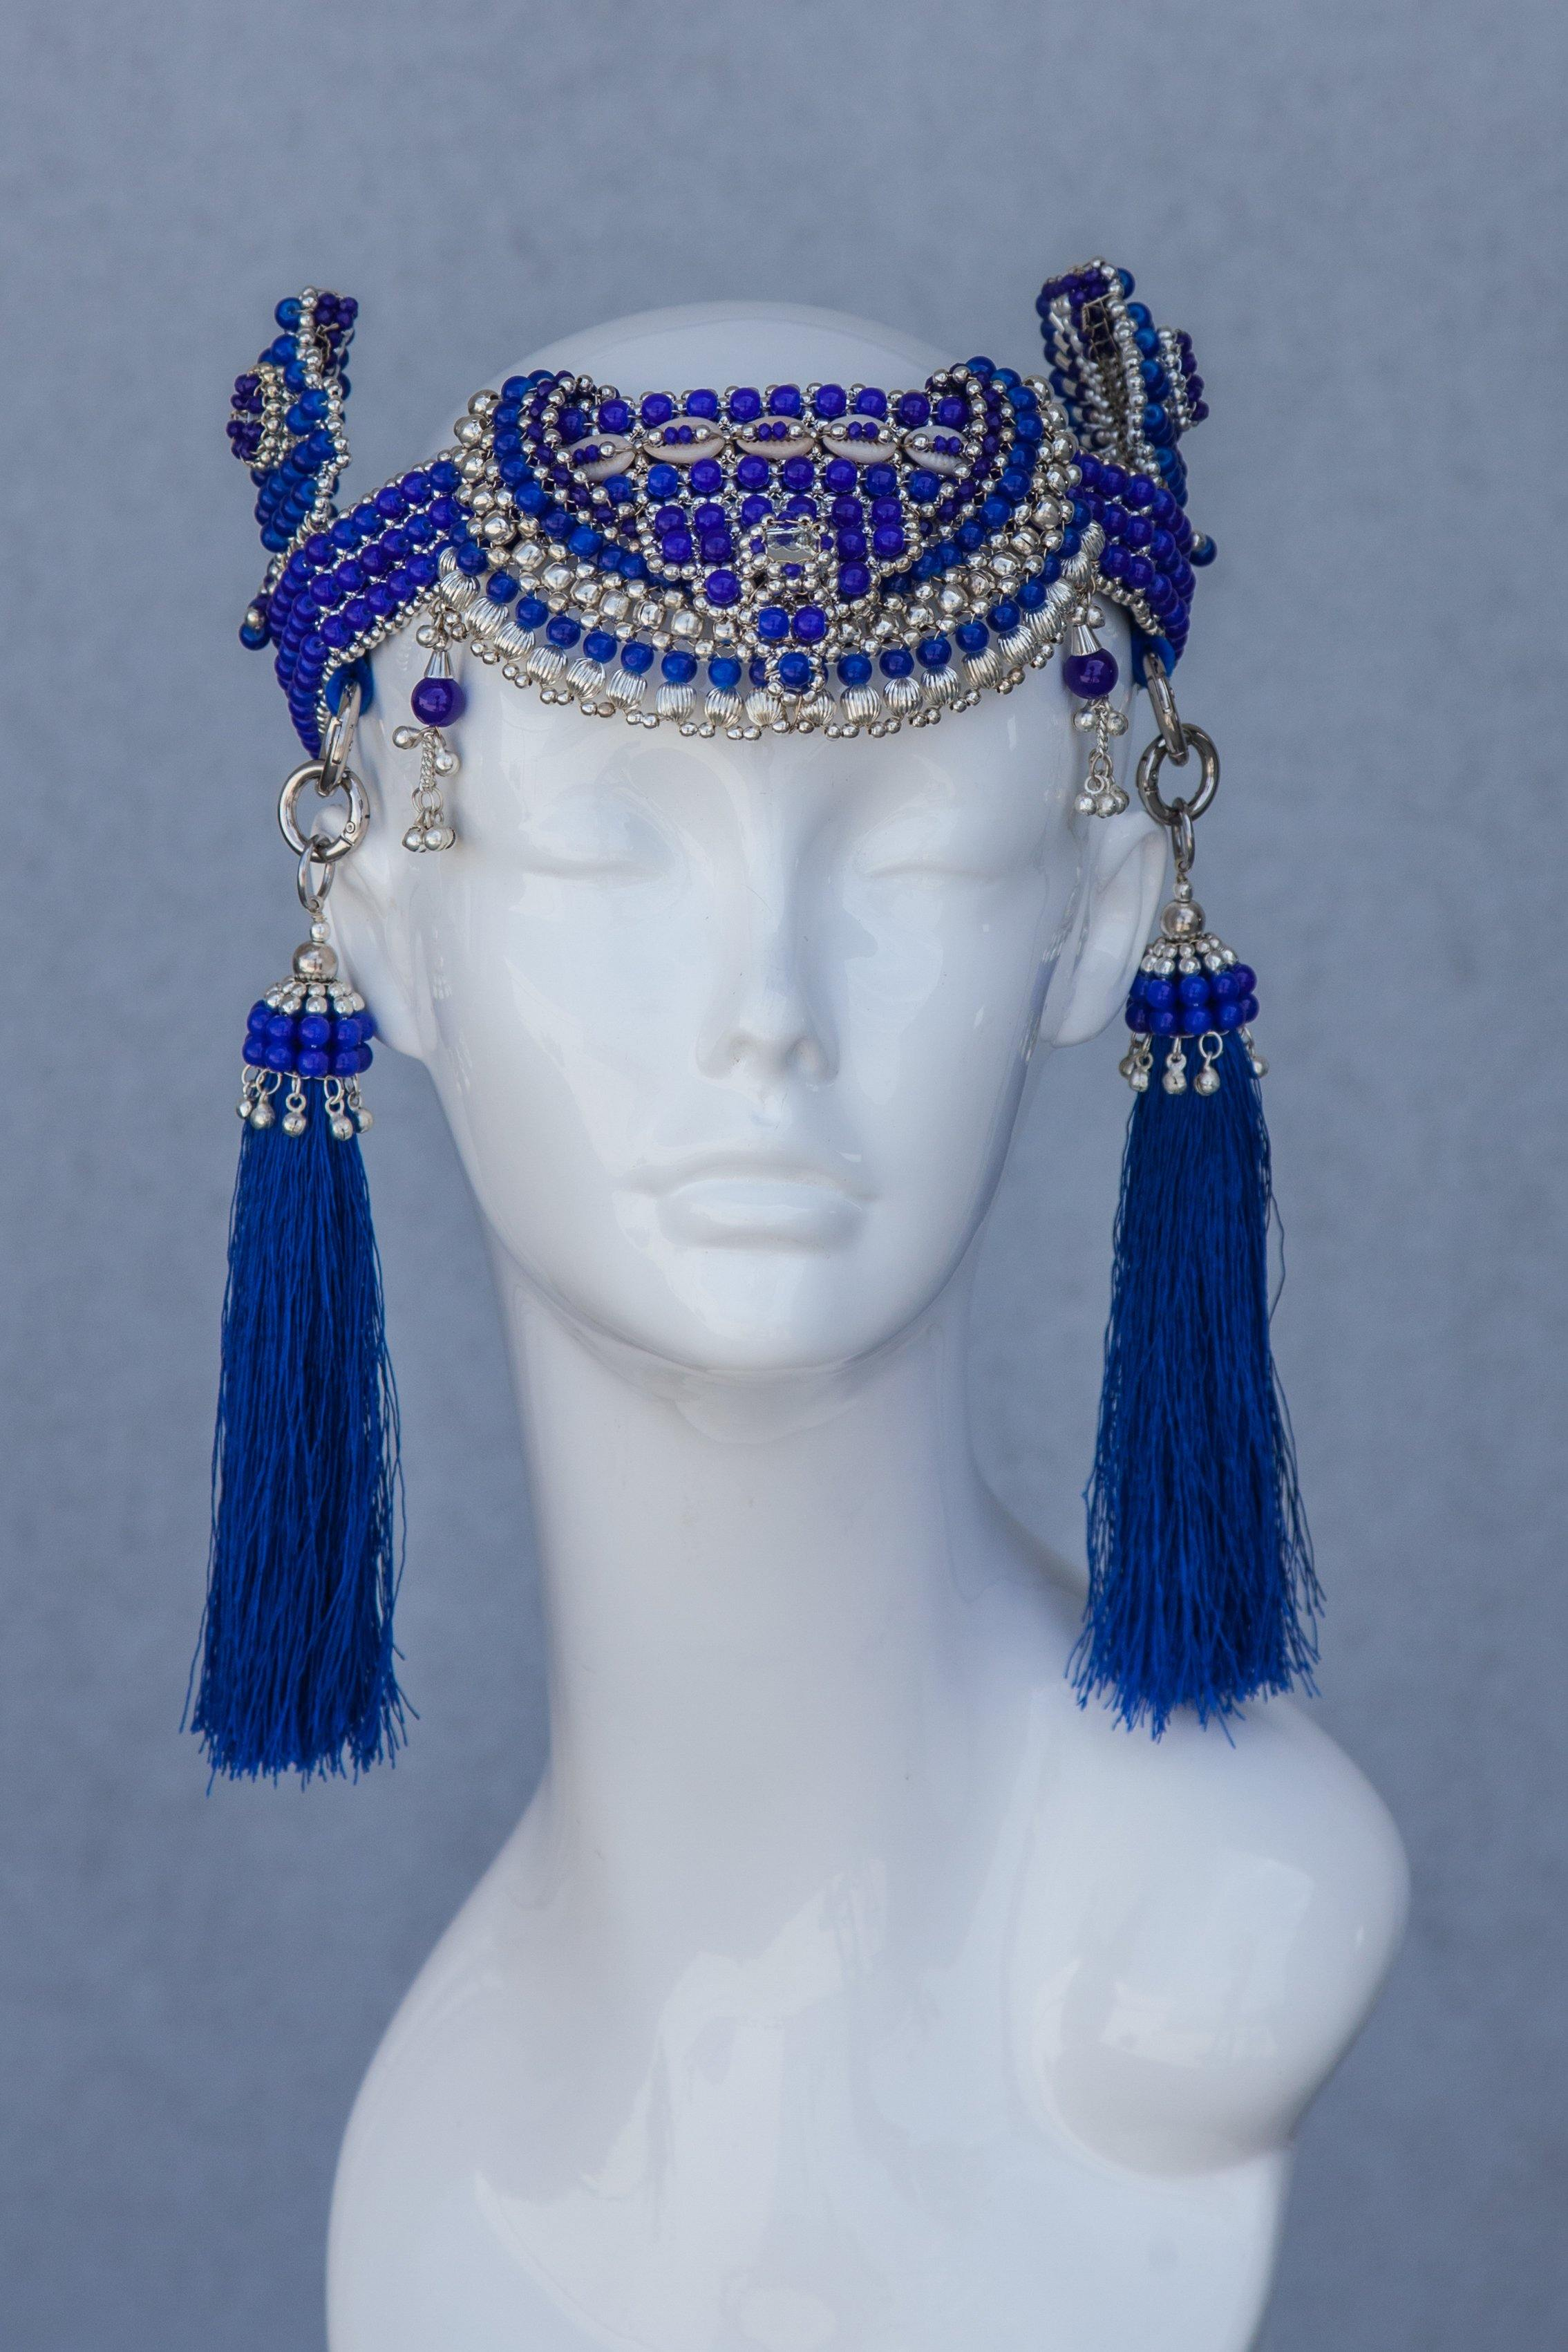 Anais Modular Crown with Tassels - Blue